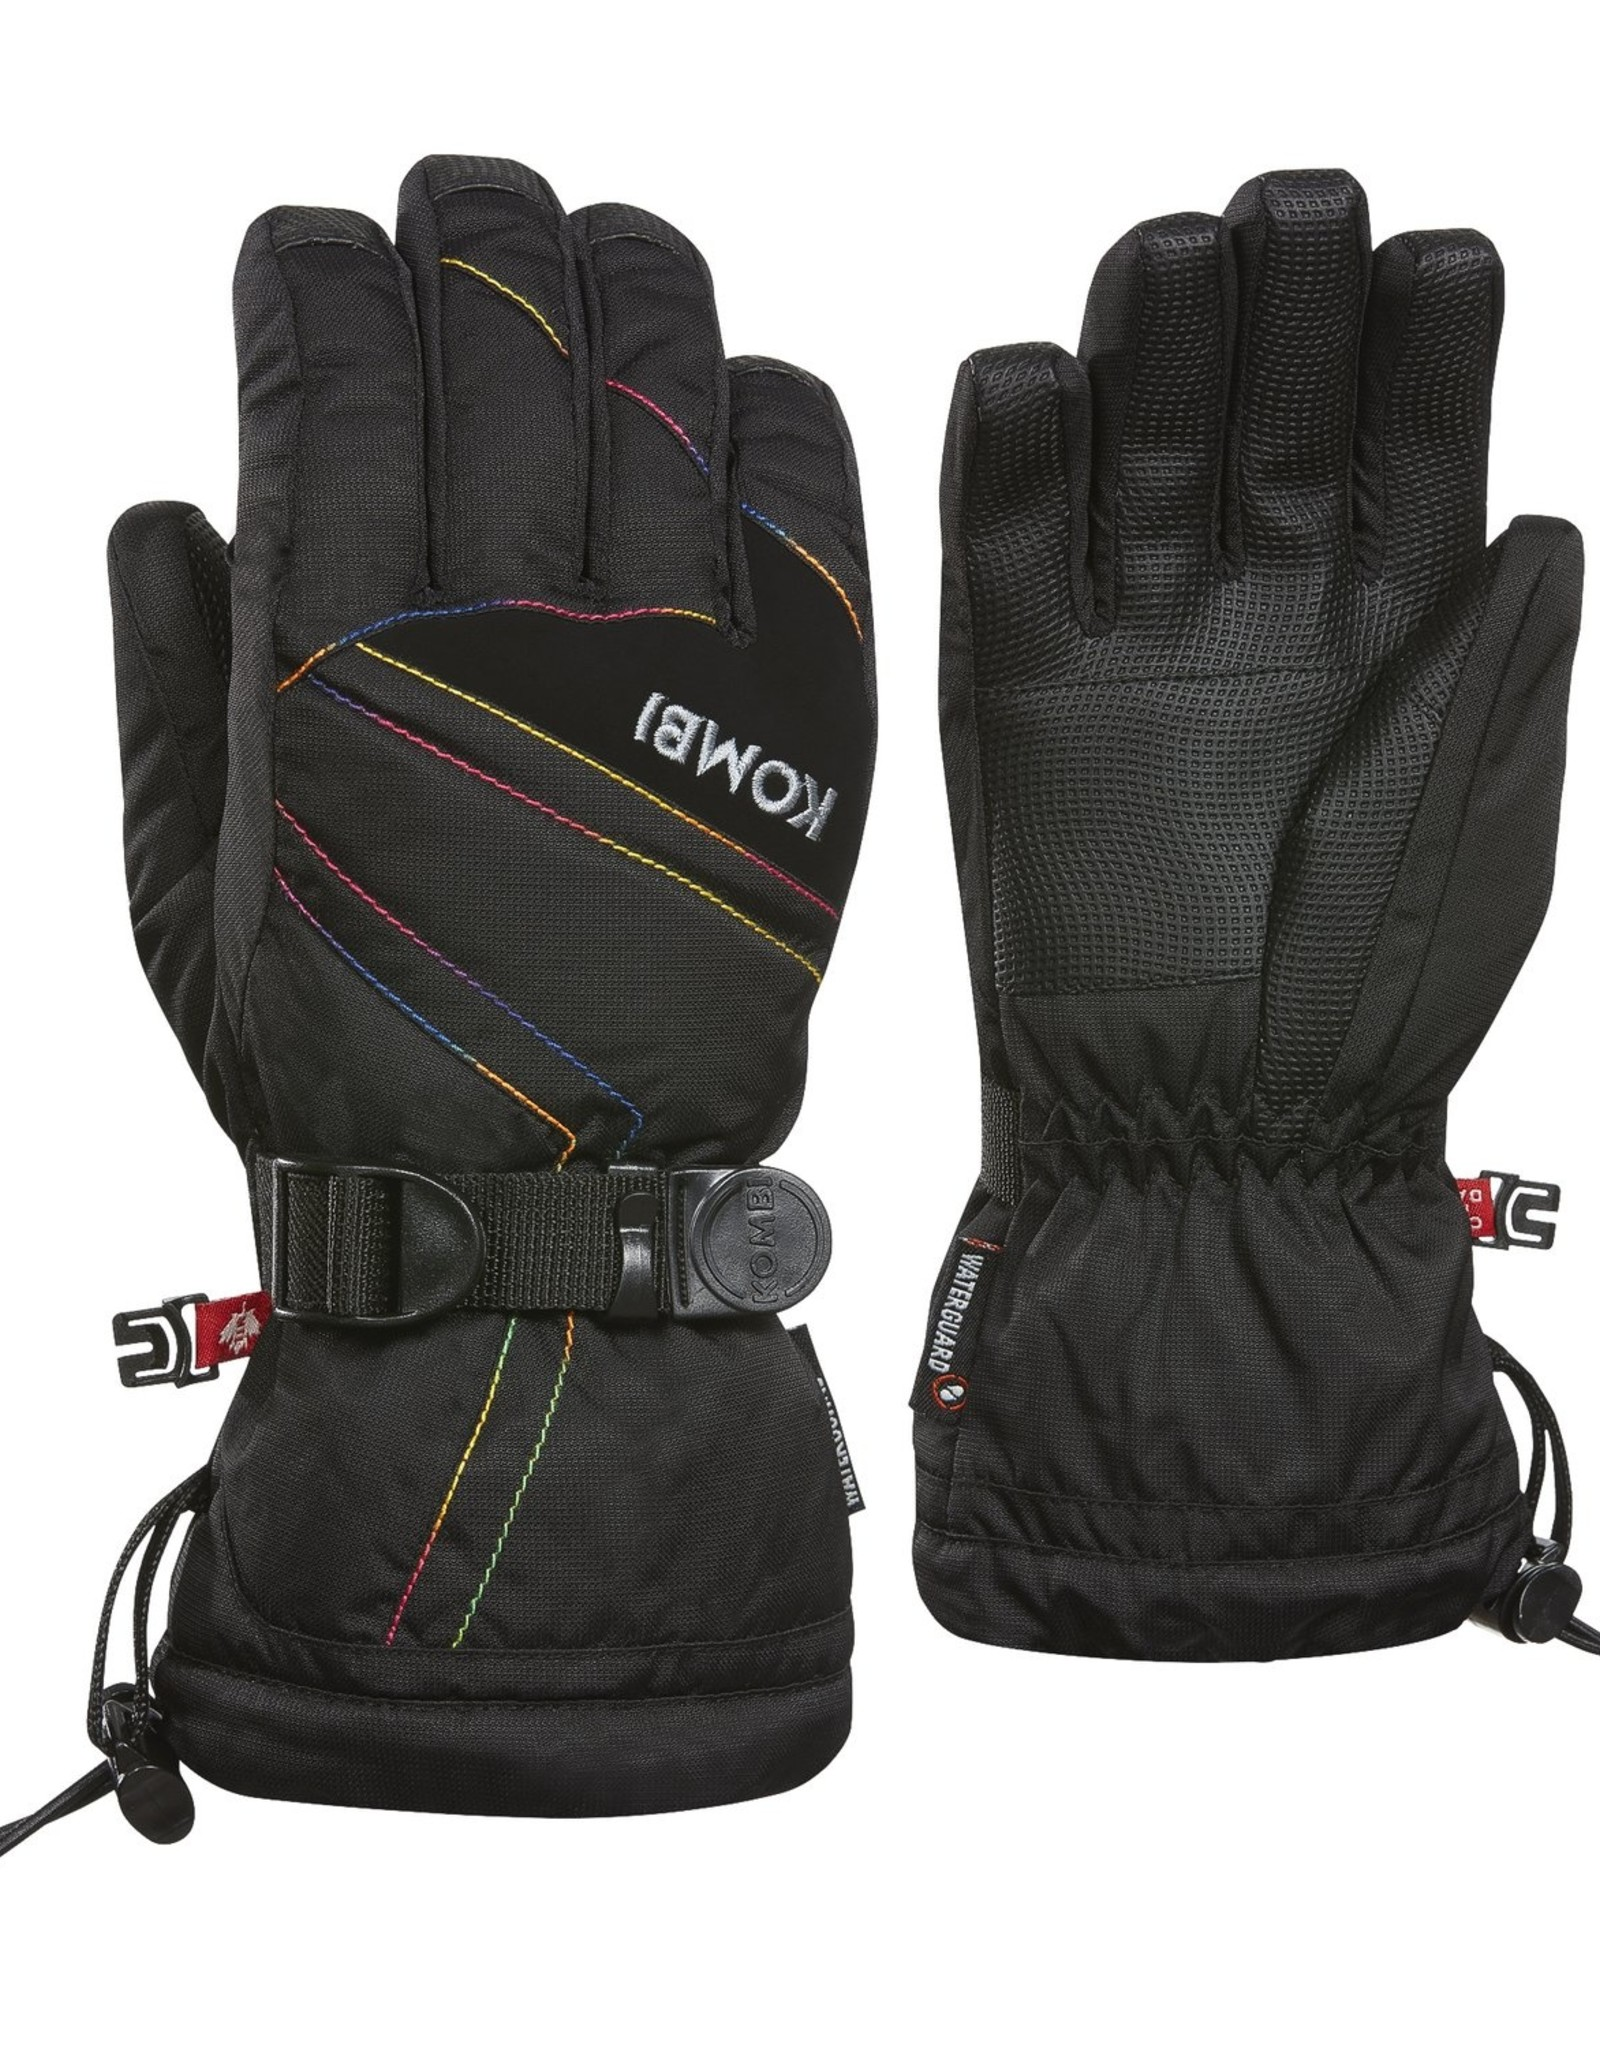 Kombi The Original Jr Glove -W2020